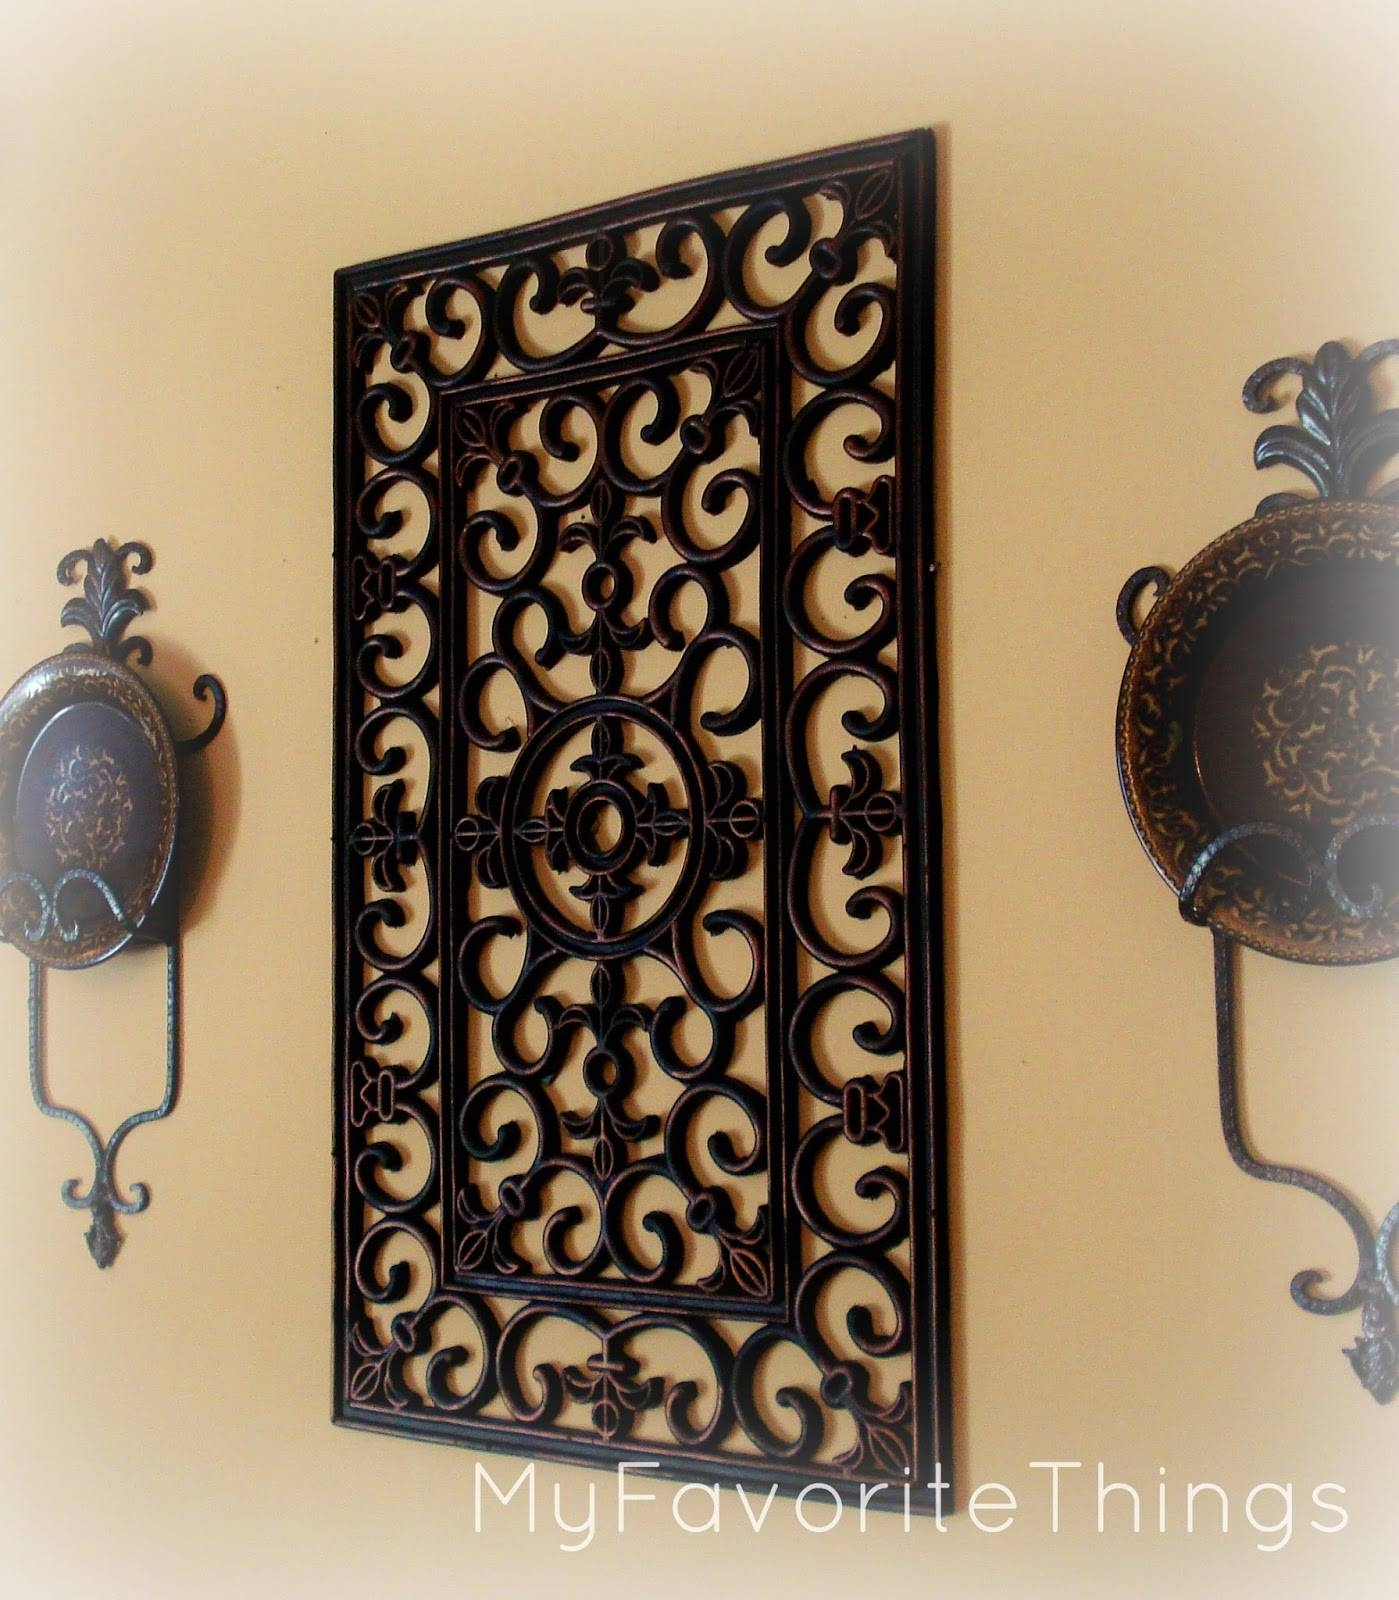 Wall Decor: Top 20 Rustic Wrought Iron Wall Decor How To Hang Within Latest Wrought Iron Garden Wall Art (View 22 of 25)